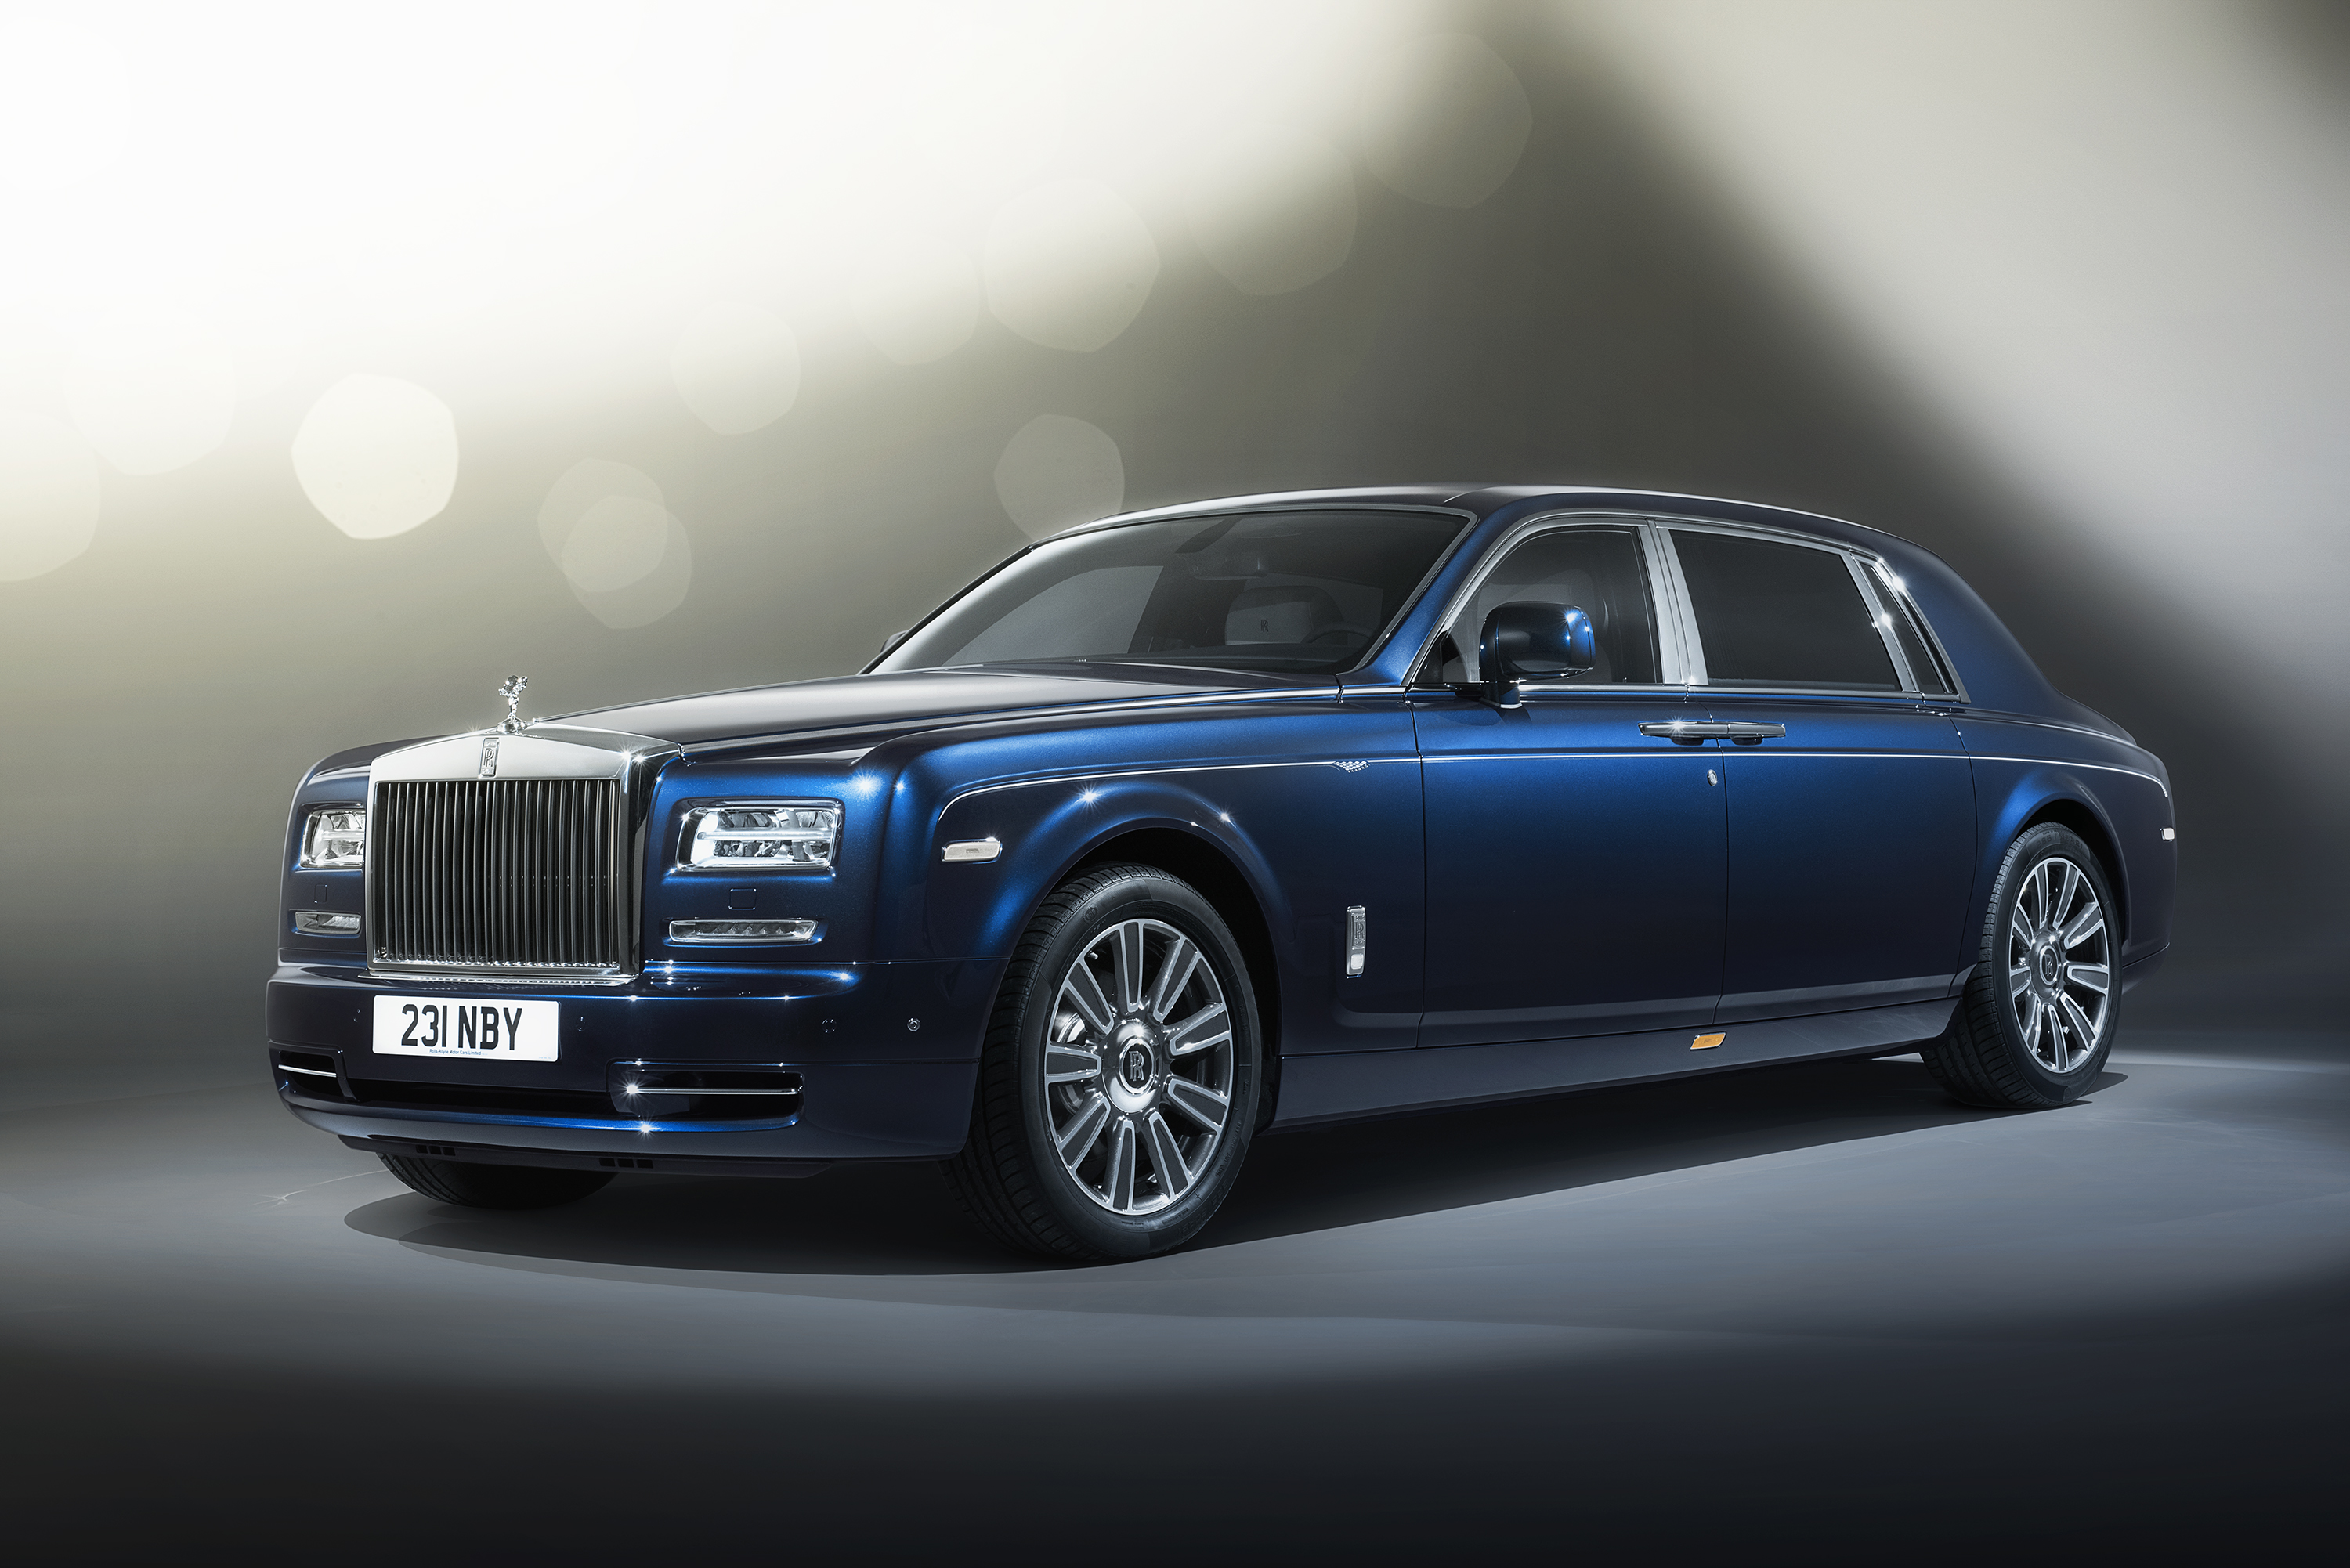 The 650 000 Rolls Royce Phantom Limelight Is Designed For Famous People Verge